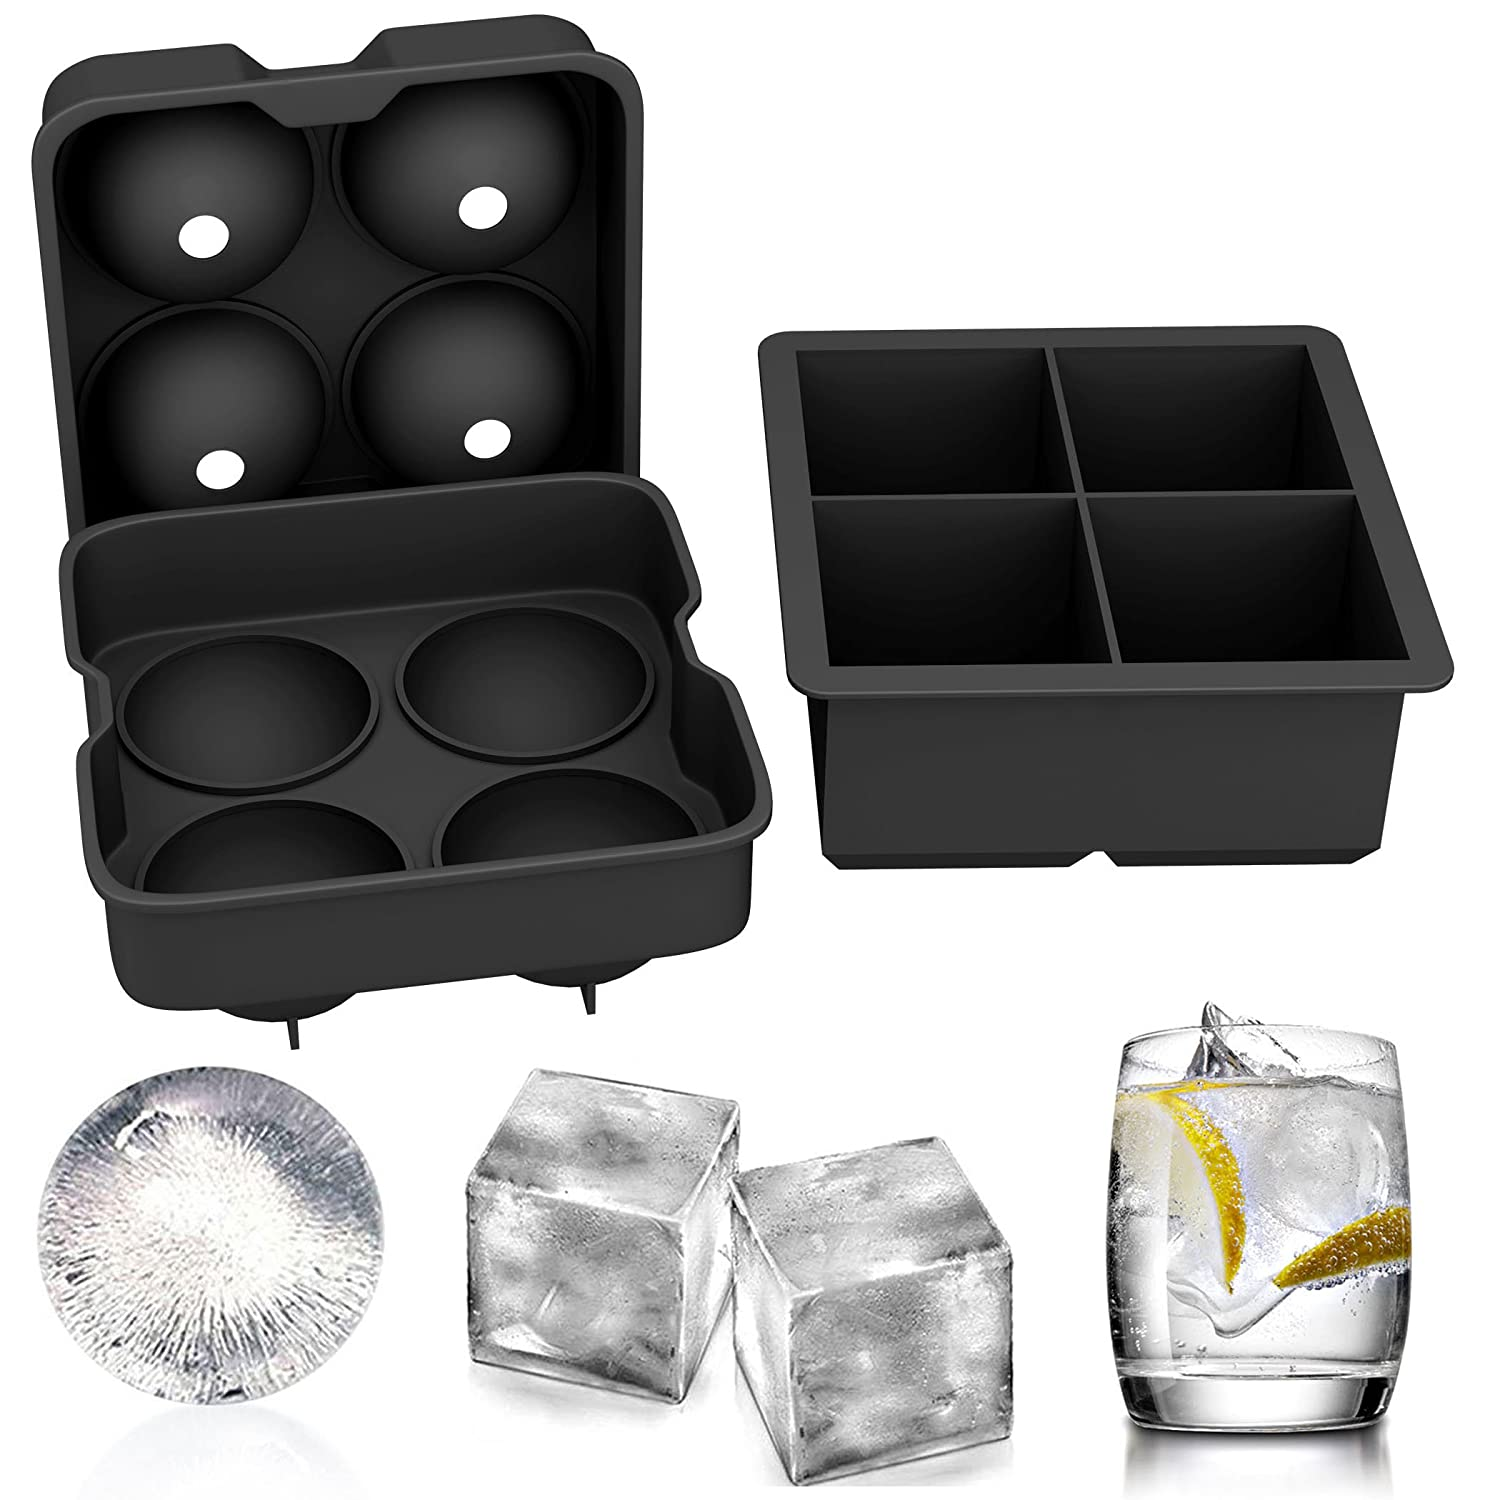 GerTong Ice Cube Molds Set of 2 - Silicone Ice Ball Maker Sphere Round Ice Cubes and Large Square Ice Cube Trays, Reusable & BPA Free